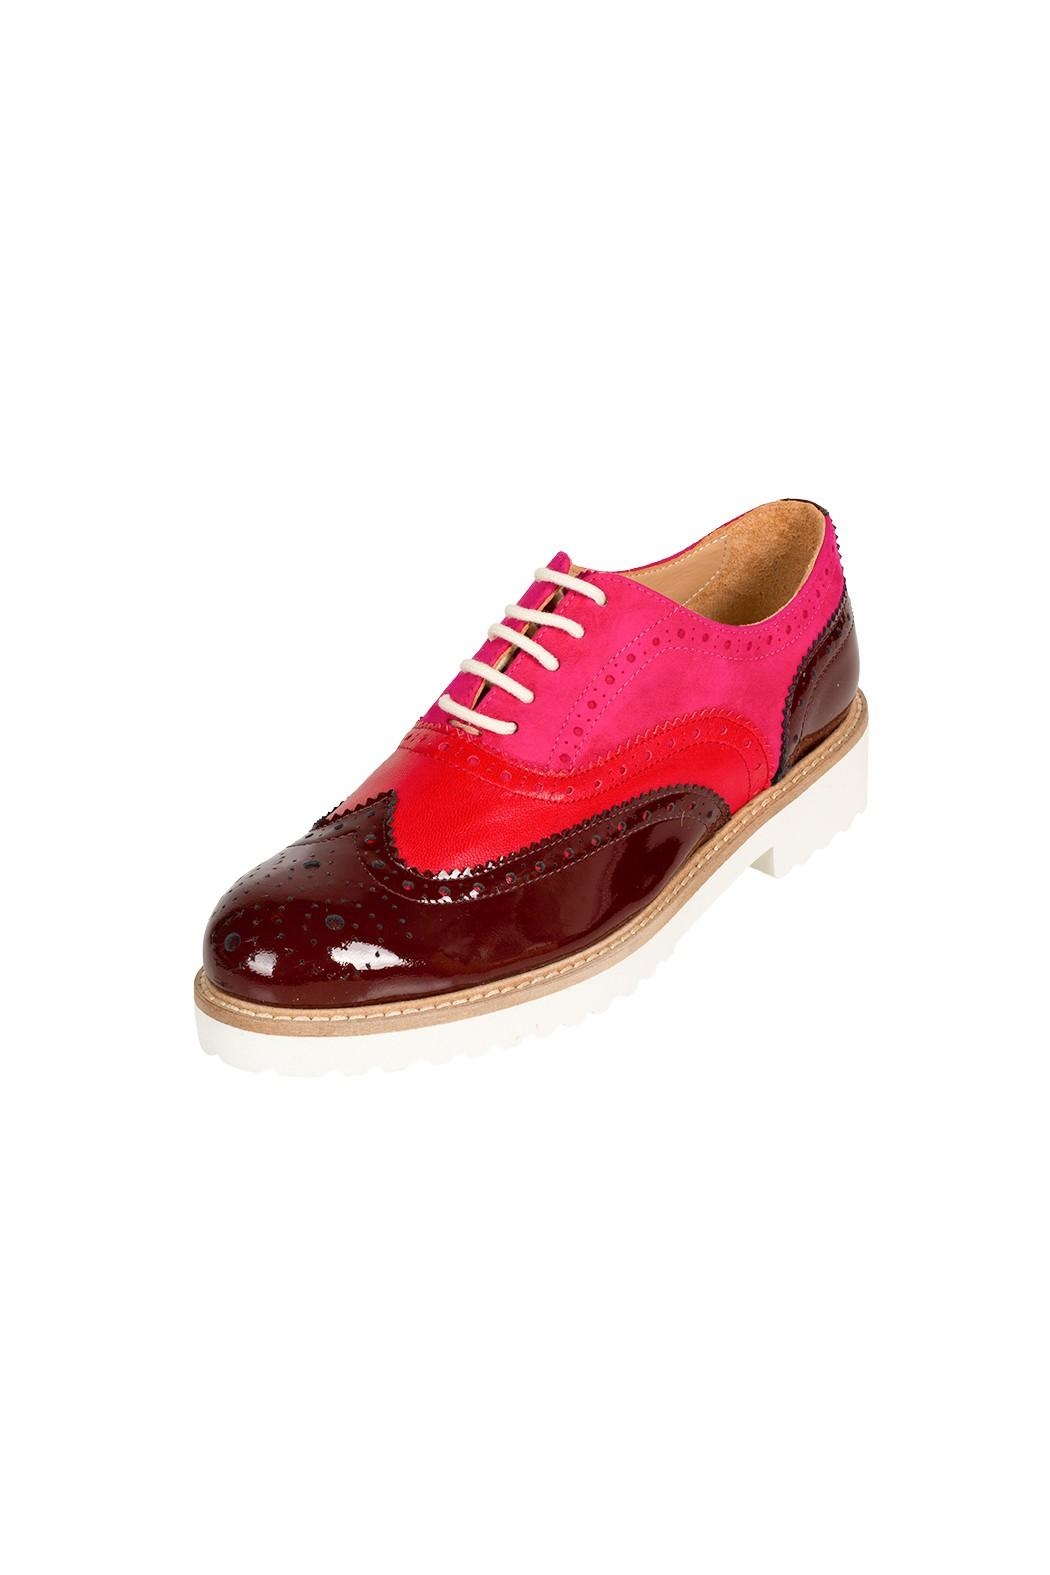 Pascucci Thick-Sole Leather Brogue - Front Full Image